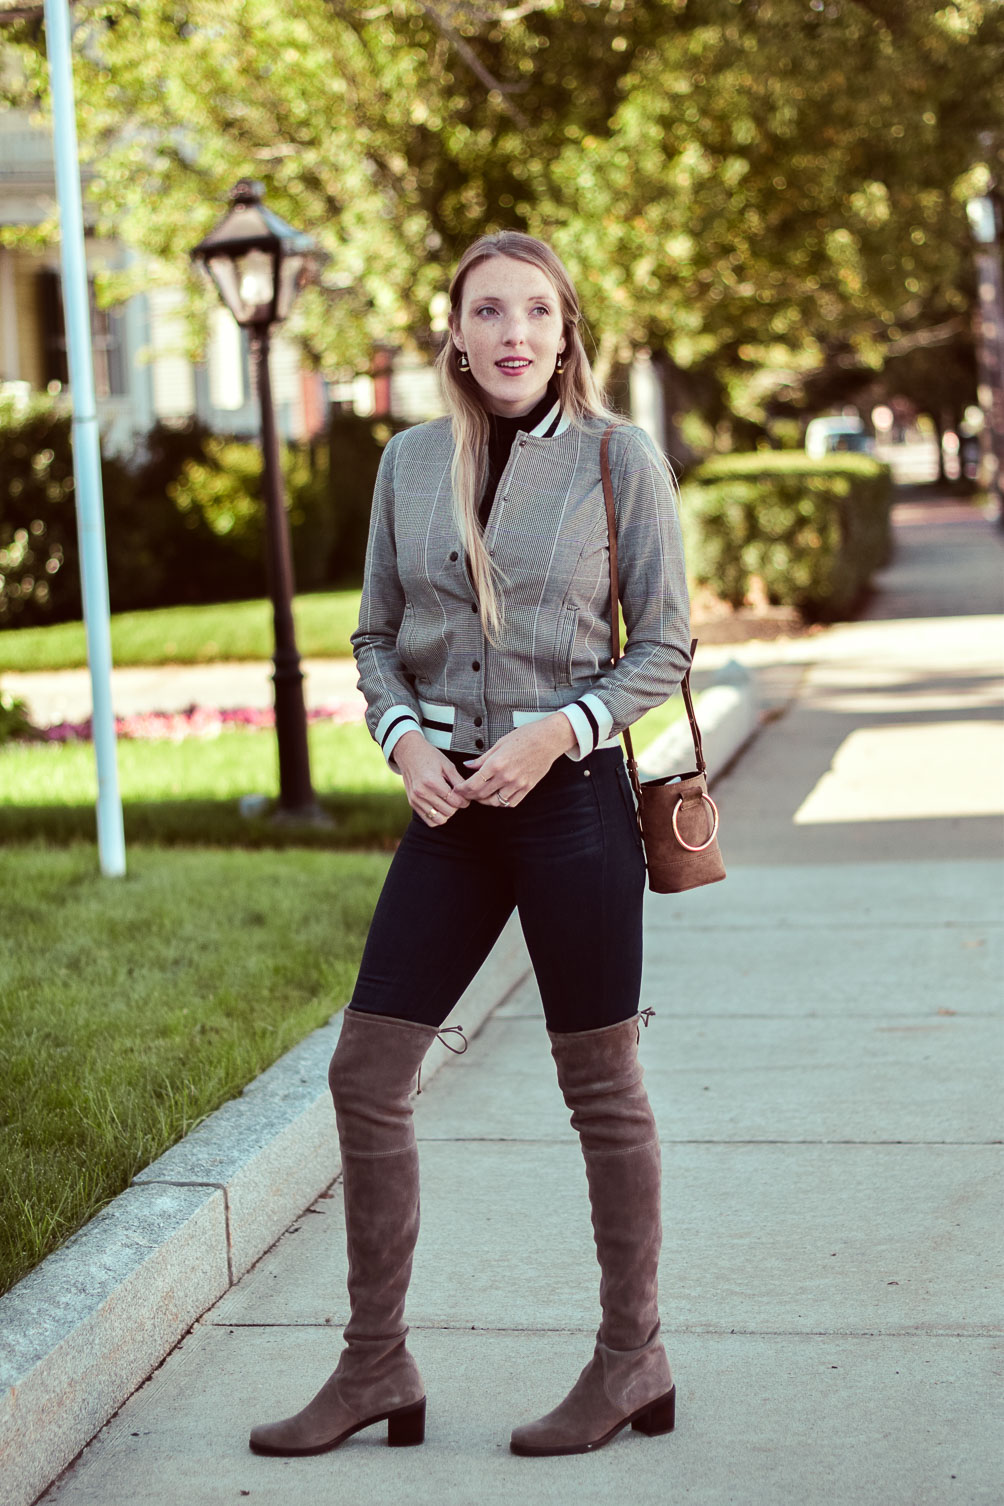 styling a Who What Wear varsity bomber jacket for fall with this black turtleneck, dark skinny jeans, and Stuart Weitzman over-the-knee boots